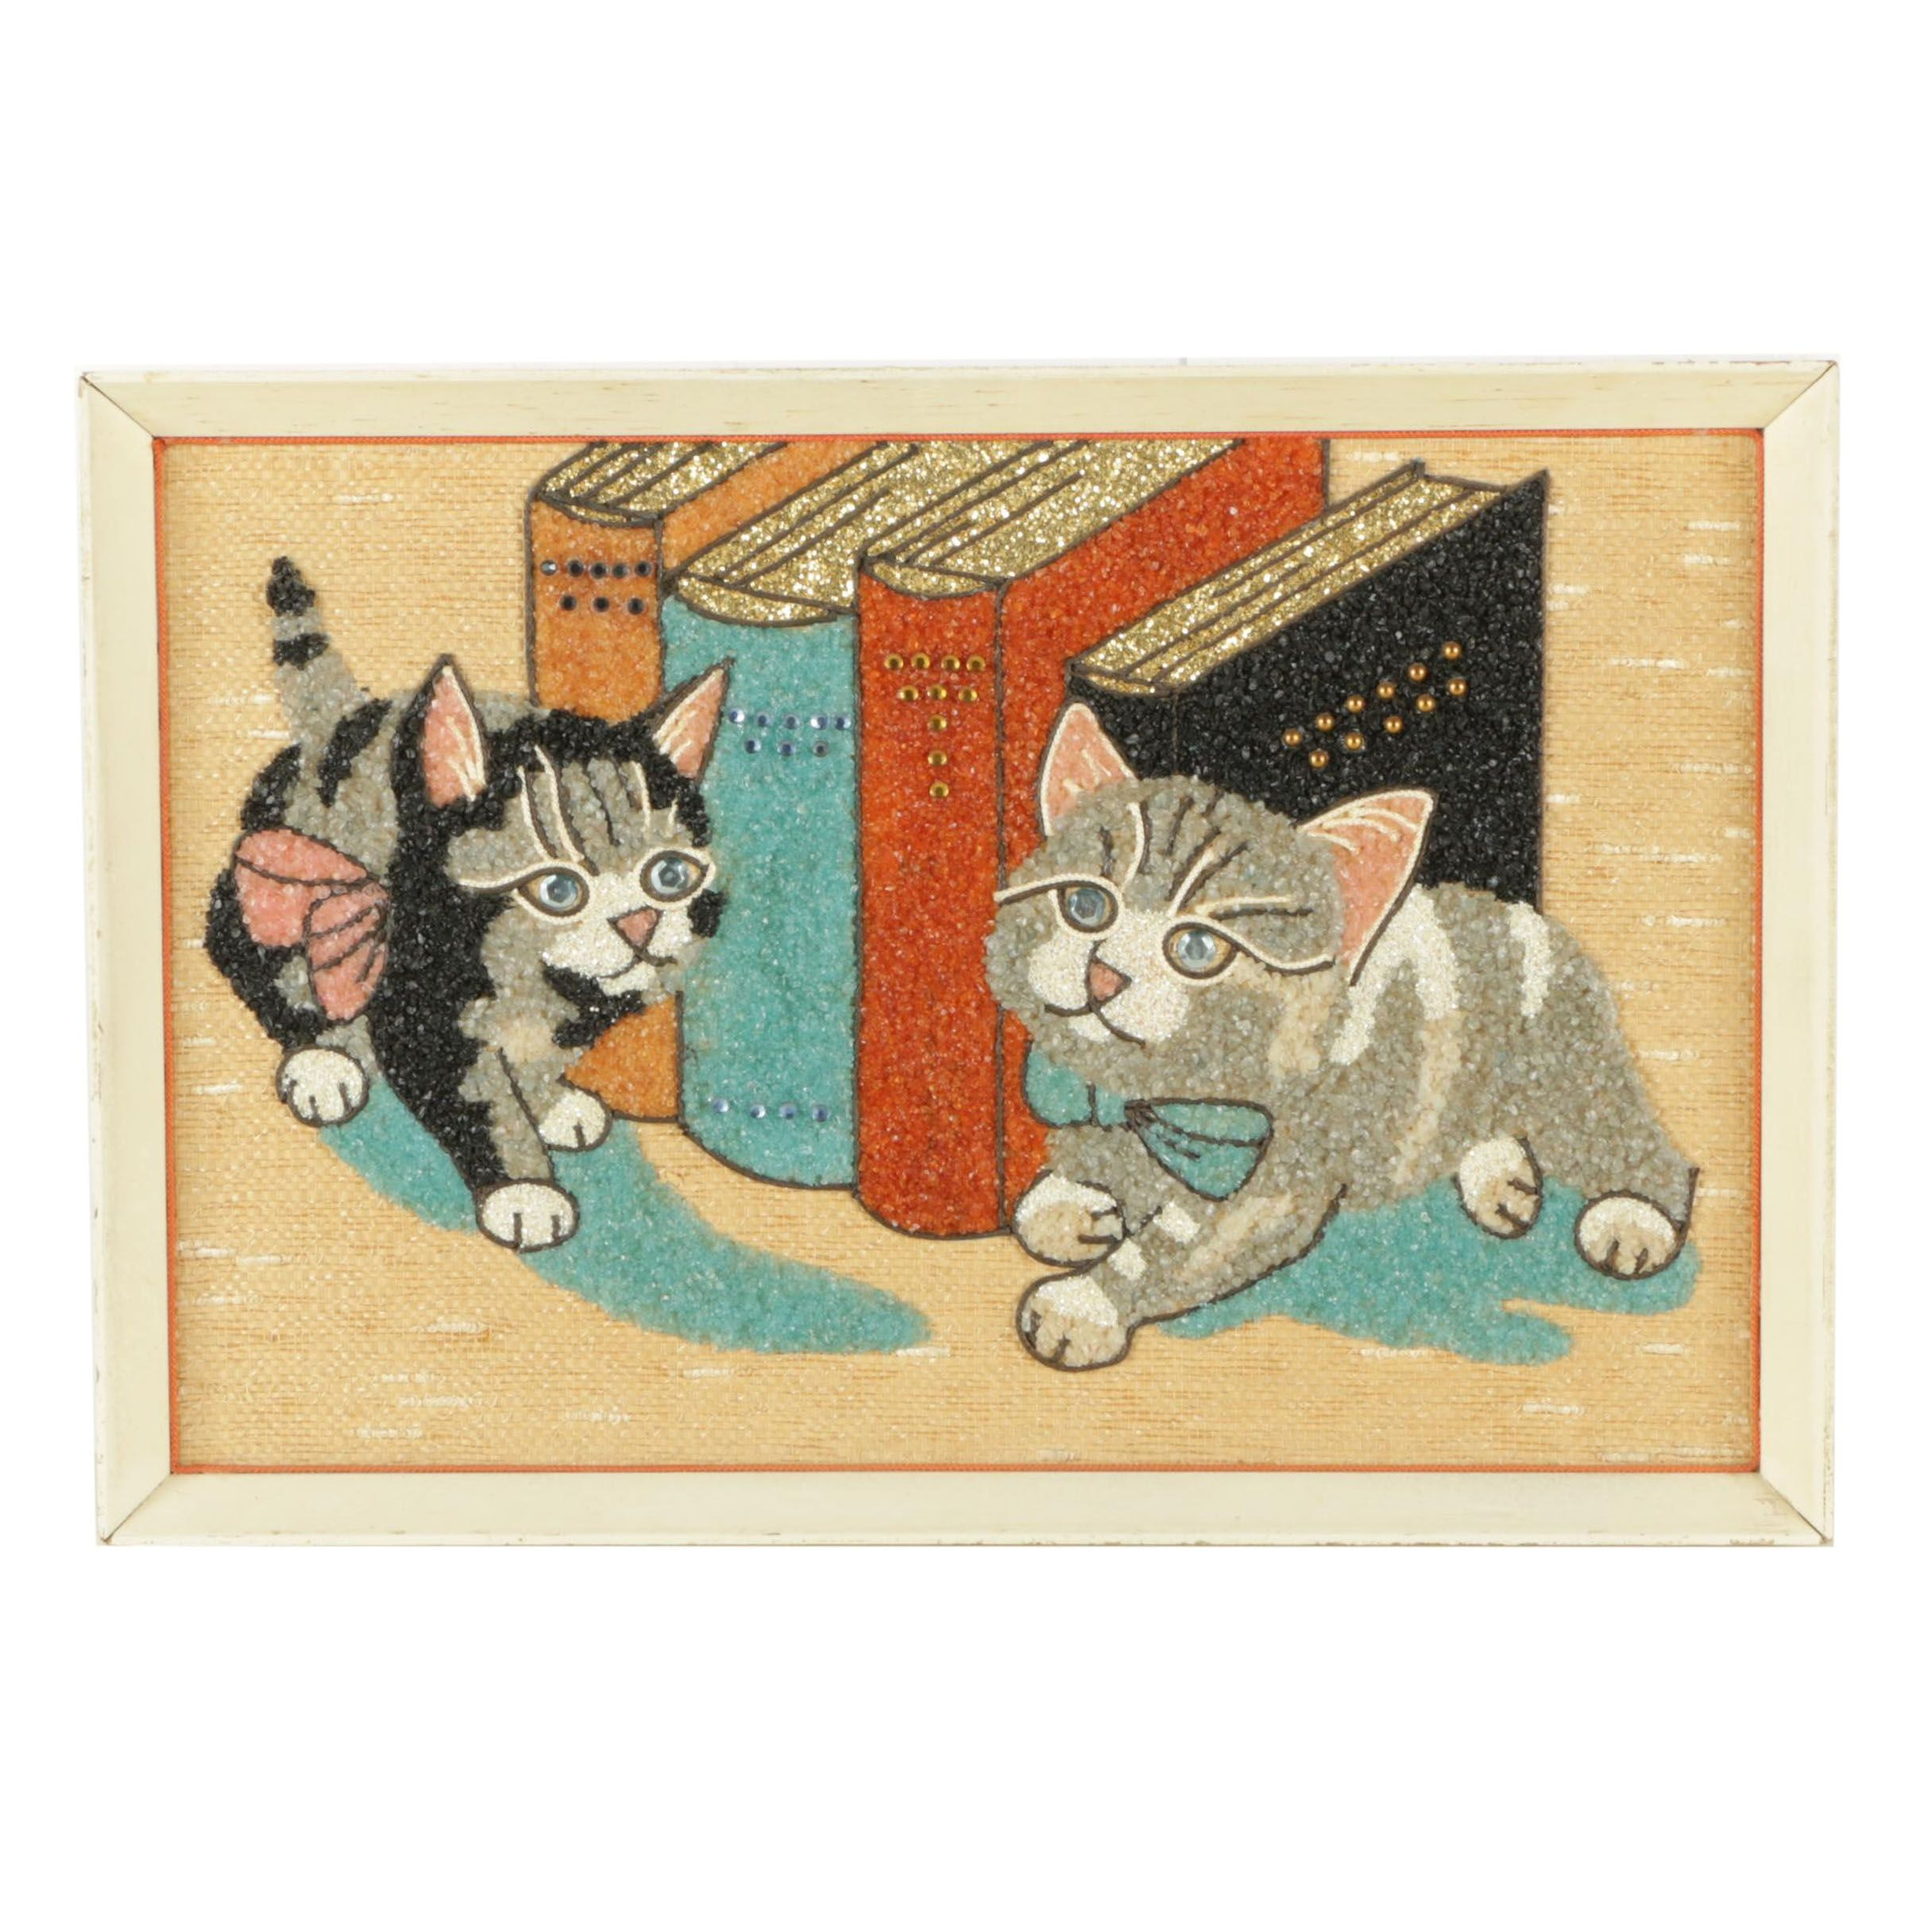 Stone and Glitter Mosaic of Kittens and Books